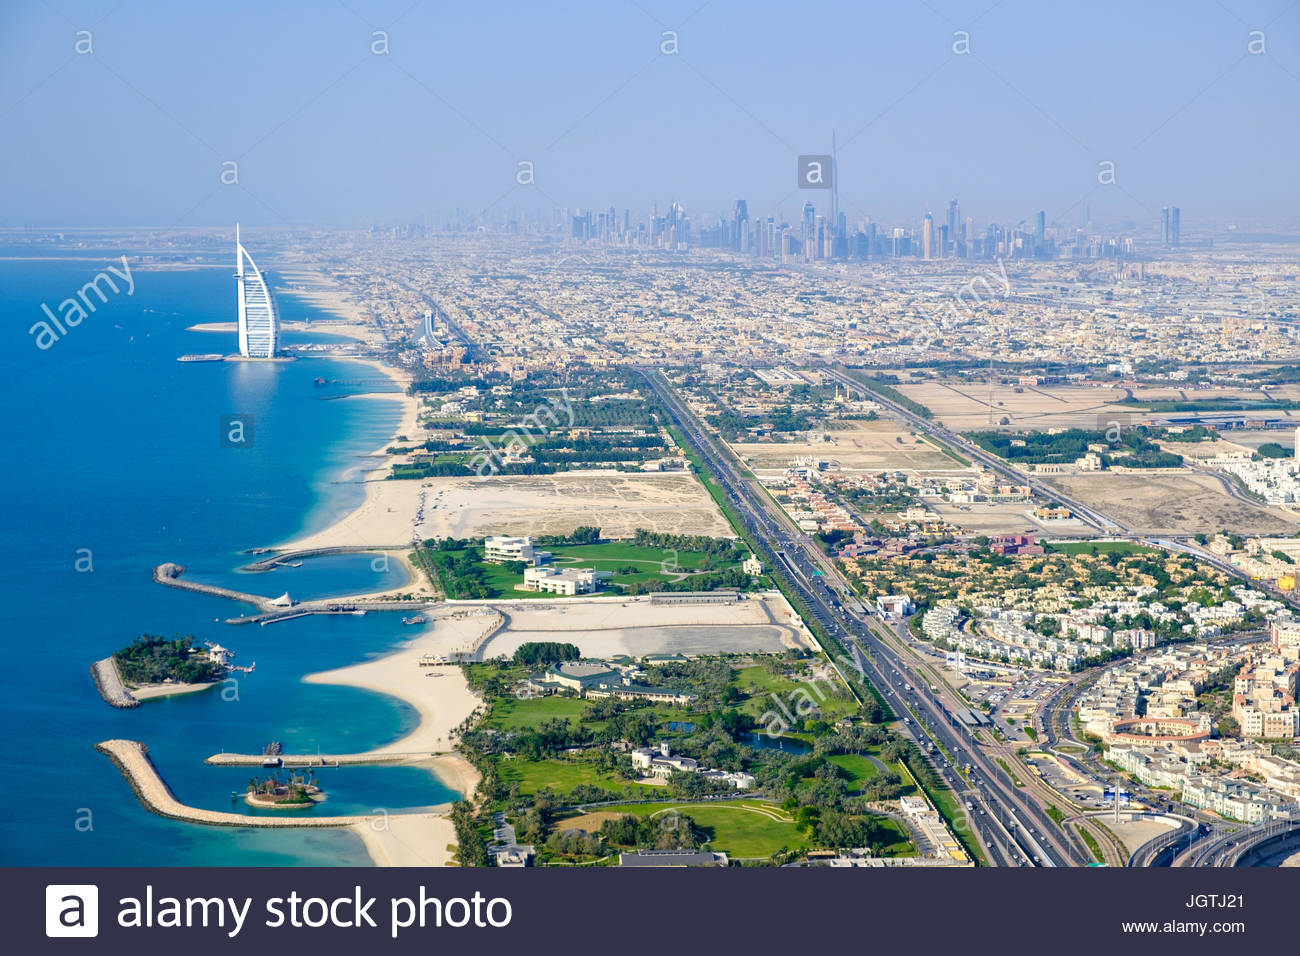 Aerial photo of Jumeirah beach, with the Burj Al Arab and downtown Dubai in the background - Stock Image